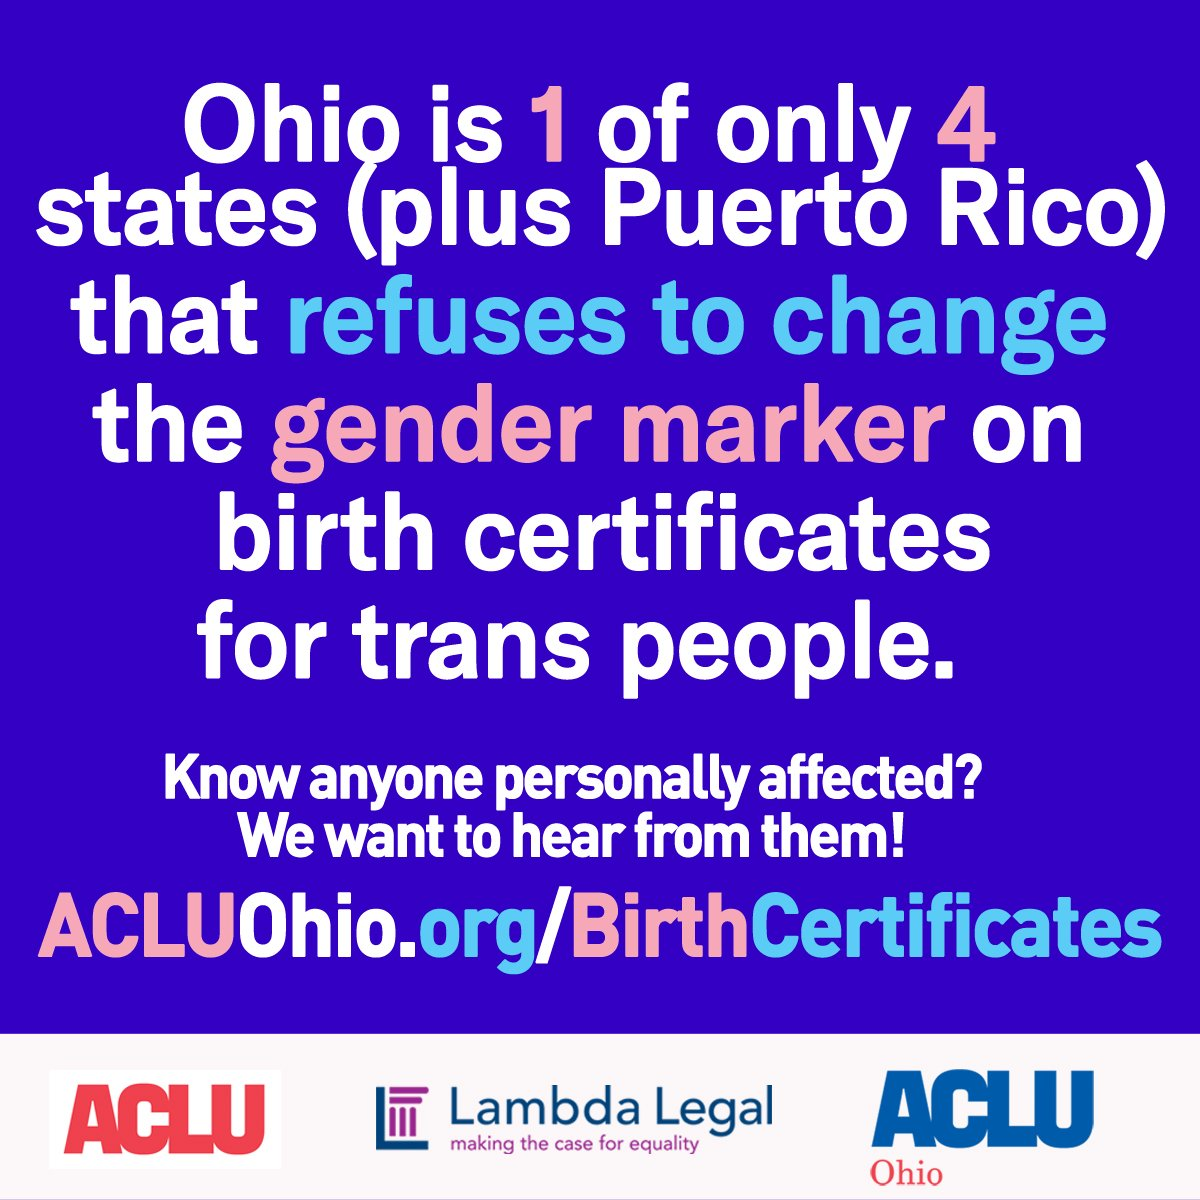 Aclu of ohio on twitter ohios birth certificate policy is aclu of ohio on twitter ohios birth certificate policy is discriminatory against transgender and gender non conforming ohioans were trying to change aiddatafo Images